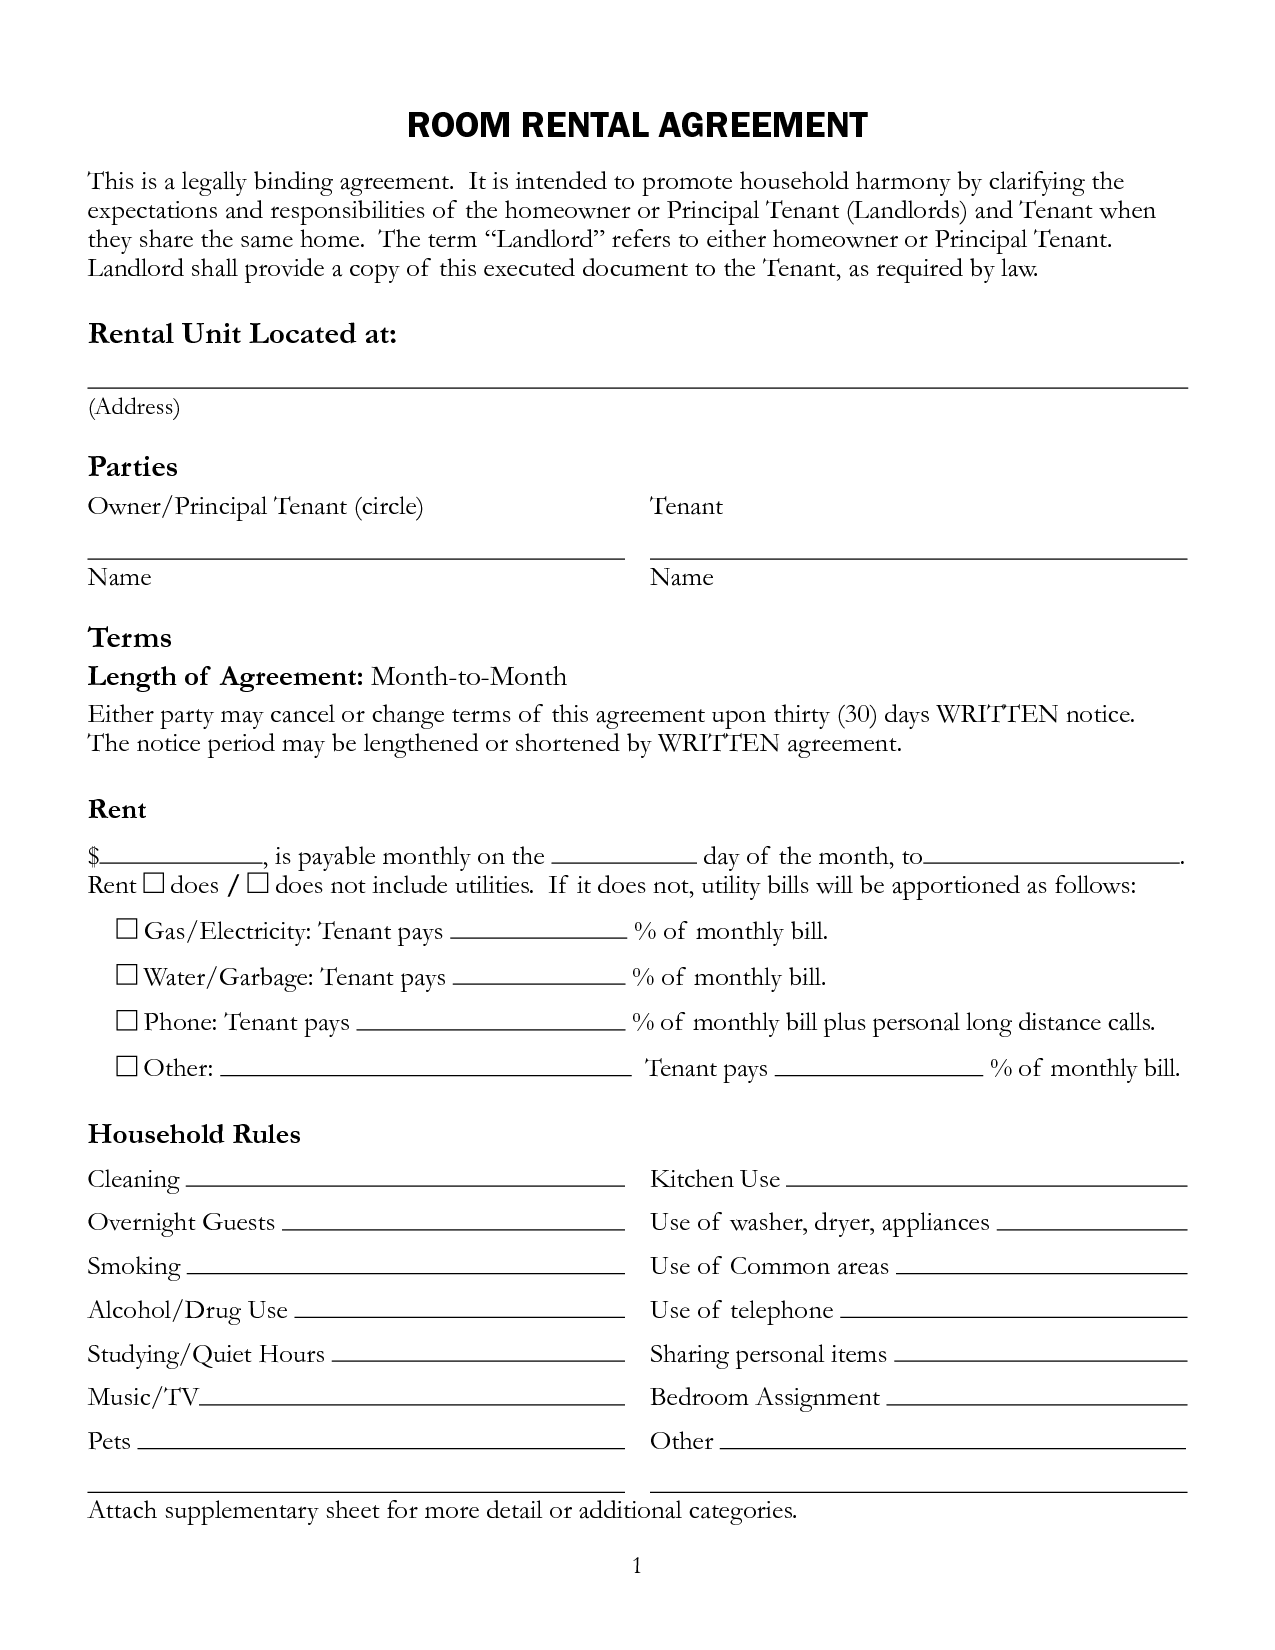 Free Simple Rental Agreement Simple Rental Agreement 34 Examples In Pdf  Word Free, 15 Basic Rental Agreement Templates Free Sample Example Format,  ...